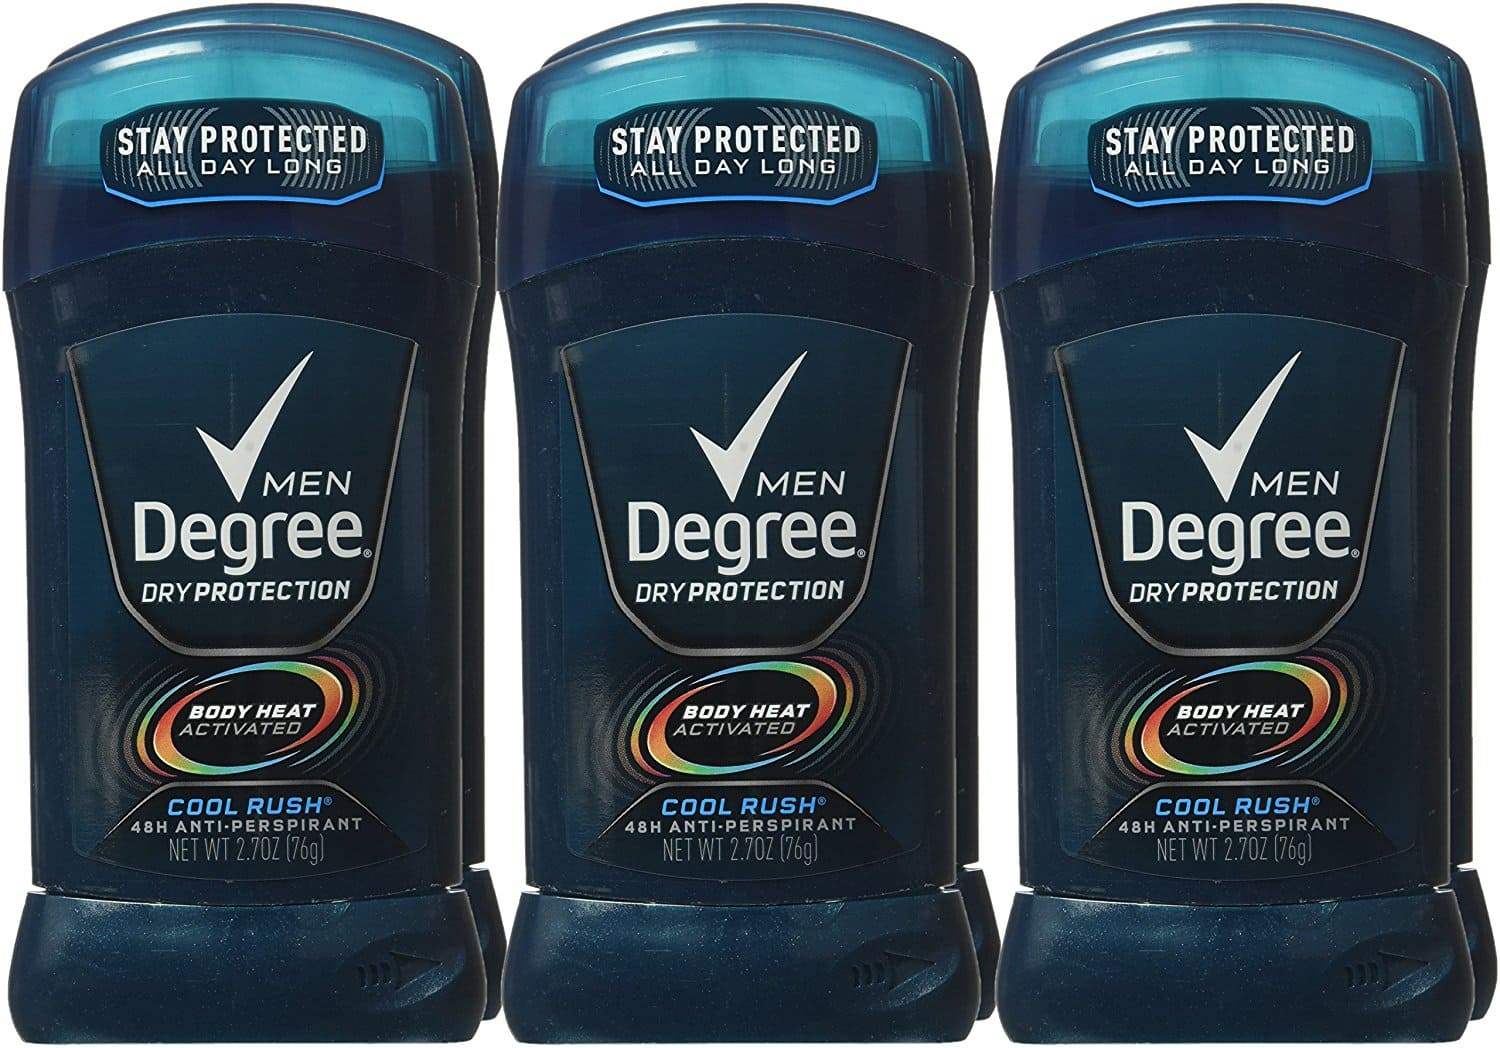 Amazon S&S: Degree Men Dry Protection 48 Hour Antiperspirant, Cool Rush 2.7 oz (Pack of 6) $9.10 + Free Shipping